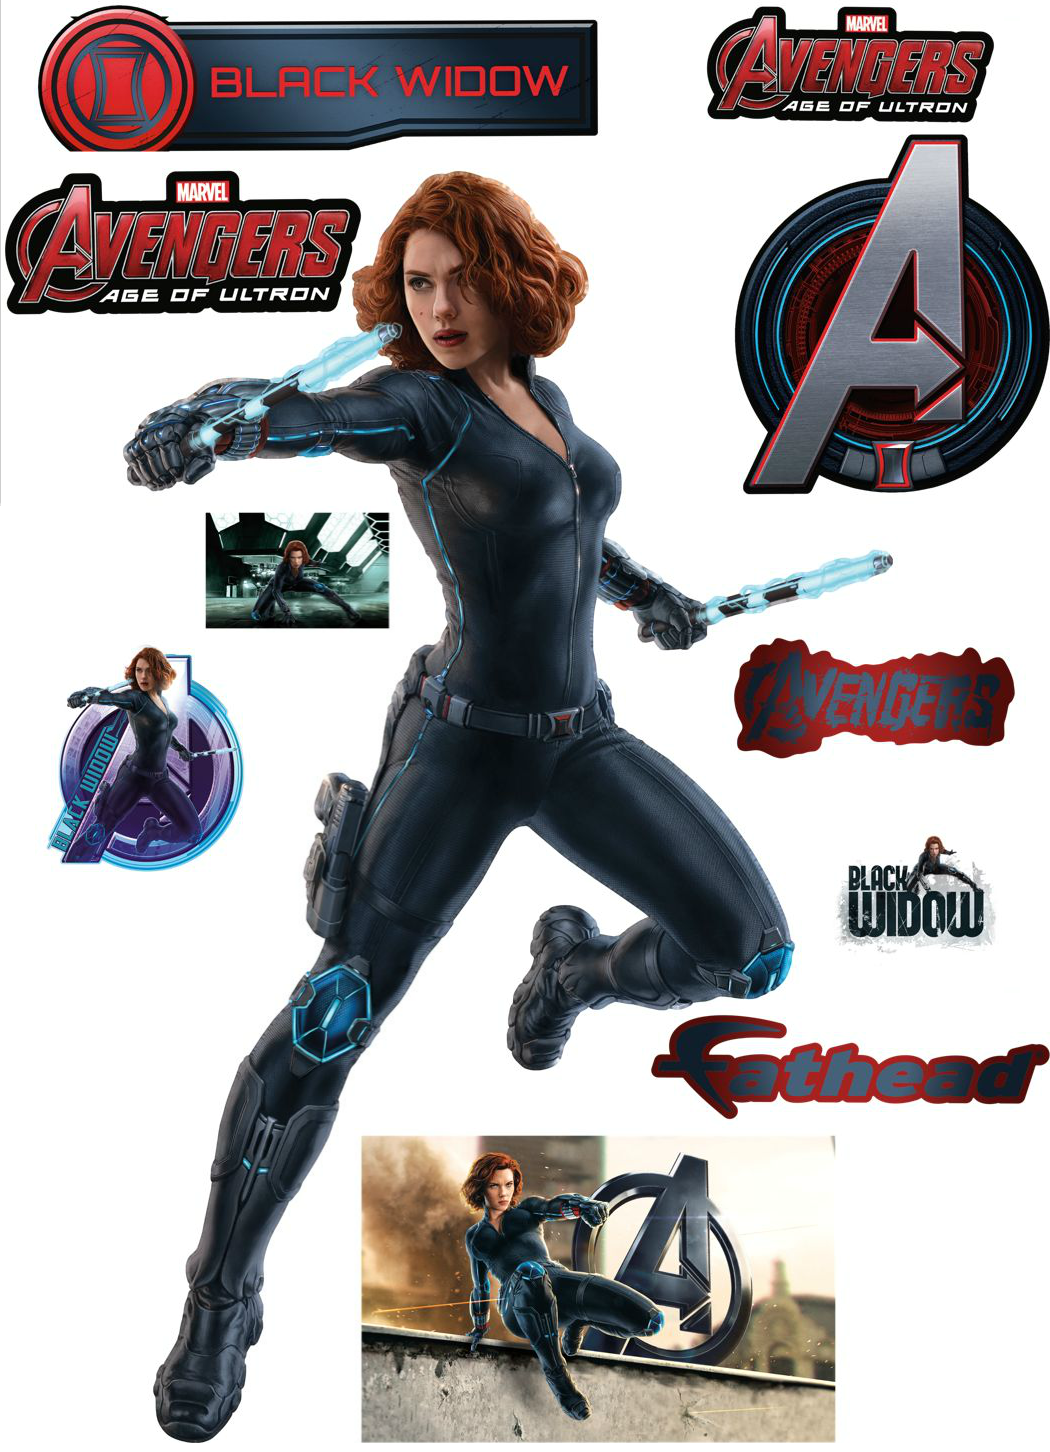 Avengers-Age-of-Ultron-Black-Widow-Fathead.png